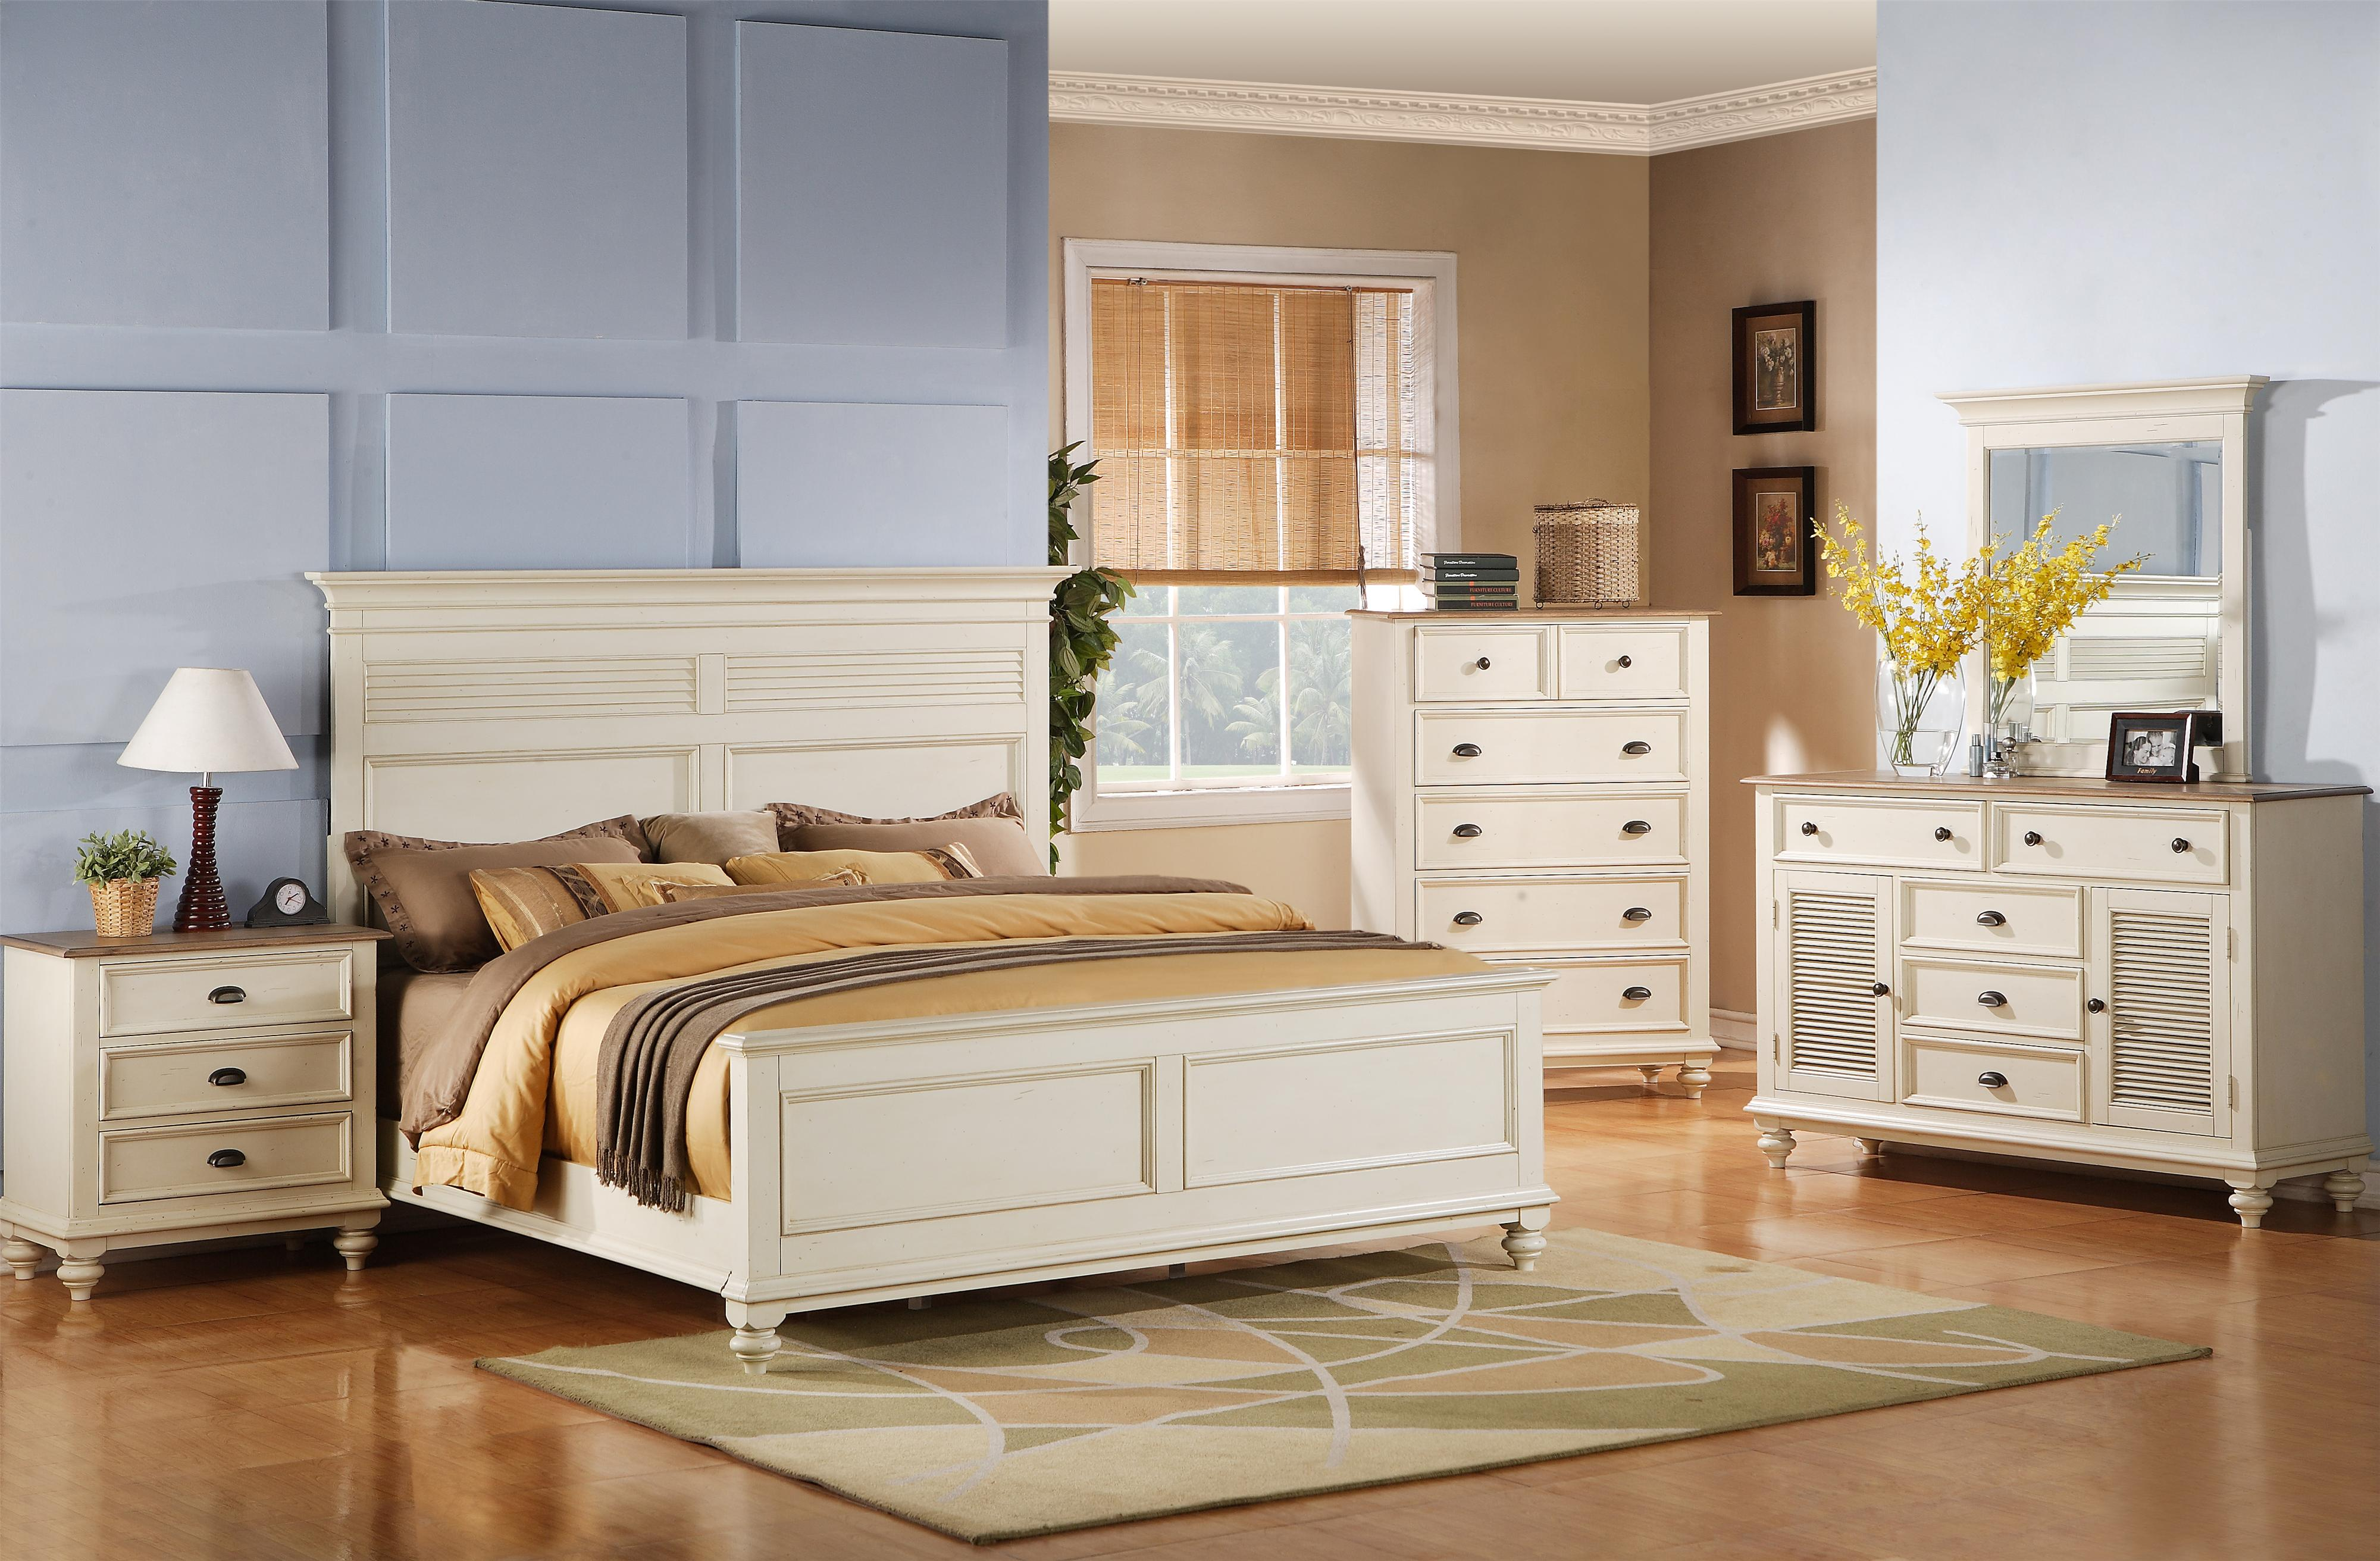 Riverside Furniture Coventry Two Tone Full/Queen Bedroom Group   Item  Number: 32500 F Q